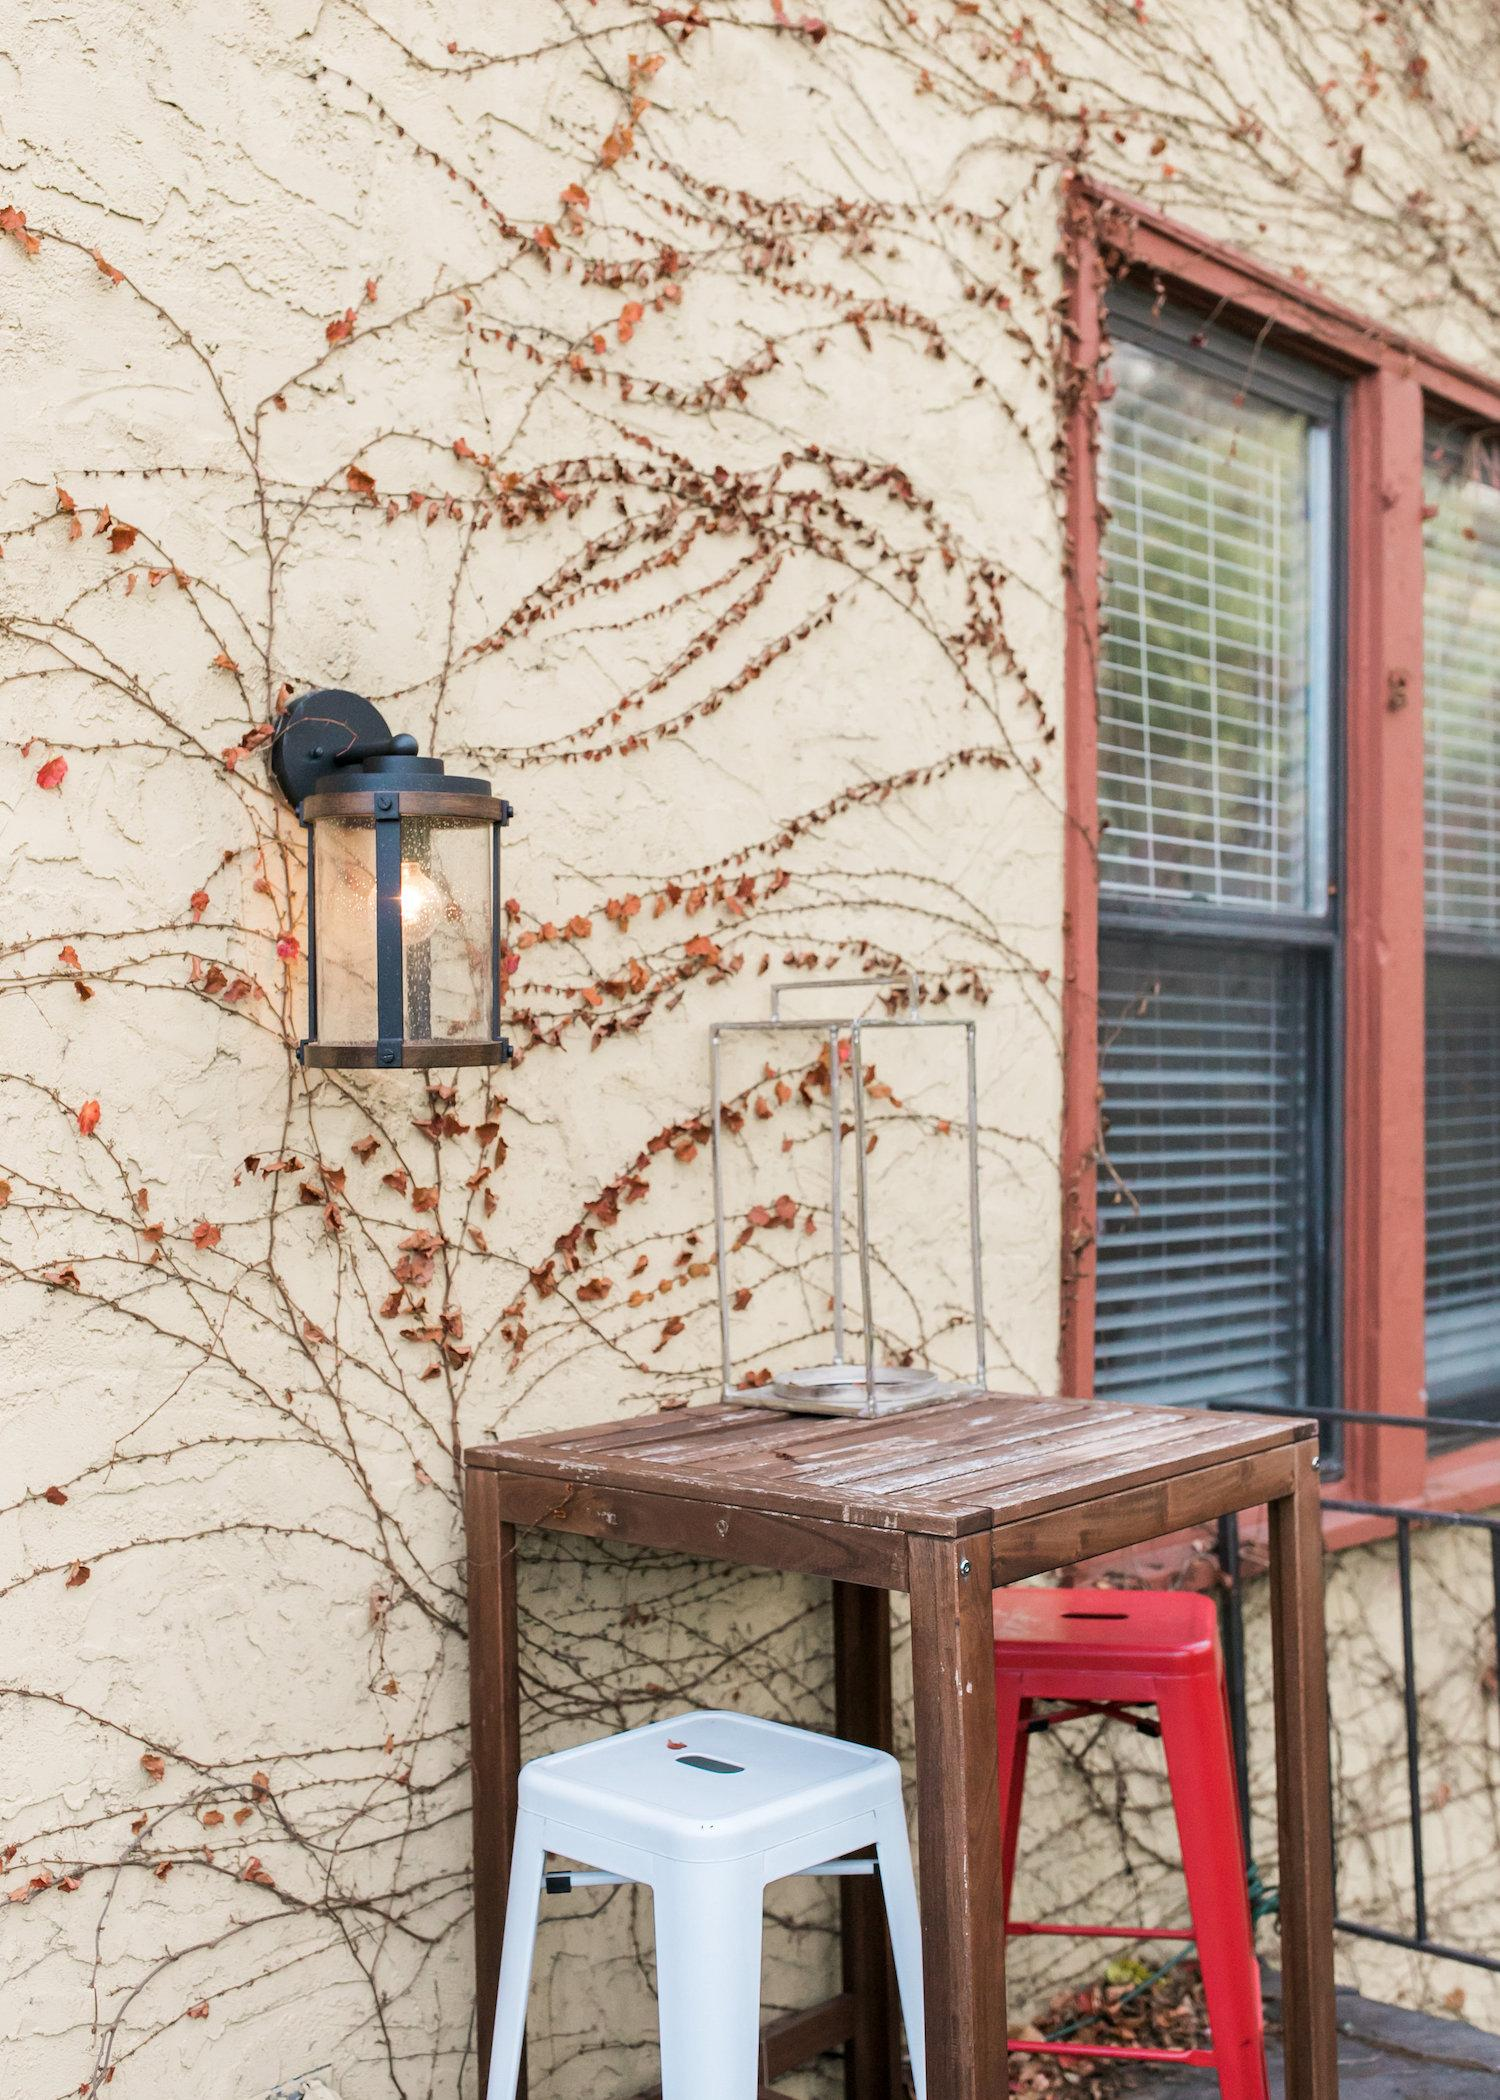 Red Whale Rentals is a short-term apartment rental company located in Mt. Adams. Michele Campbell, a designer by trade, formed the business. It now includes six properties. Two properties occupy one large home. The properties are available on an individual night basis for photographers or a 30-night short term minimum for regular guests. / Image @BrookeGenn // Published: 12.20.17